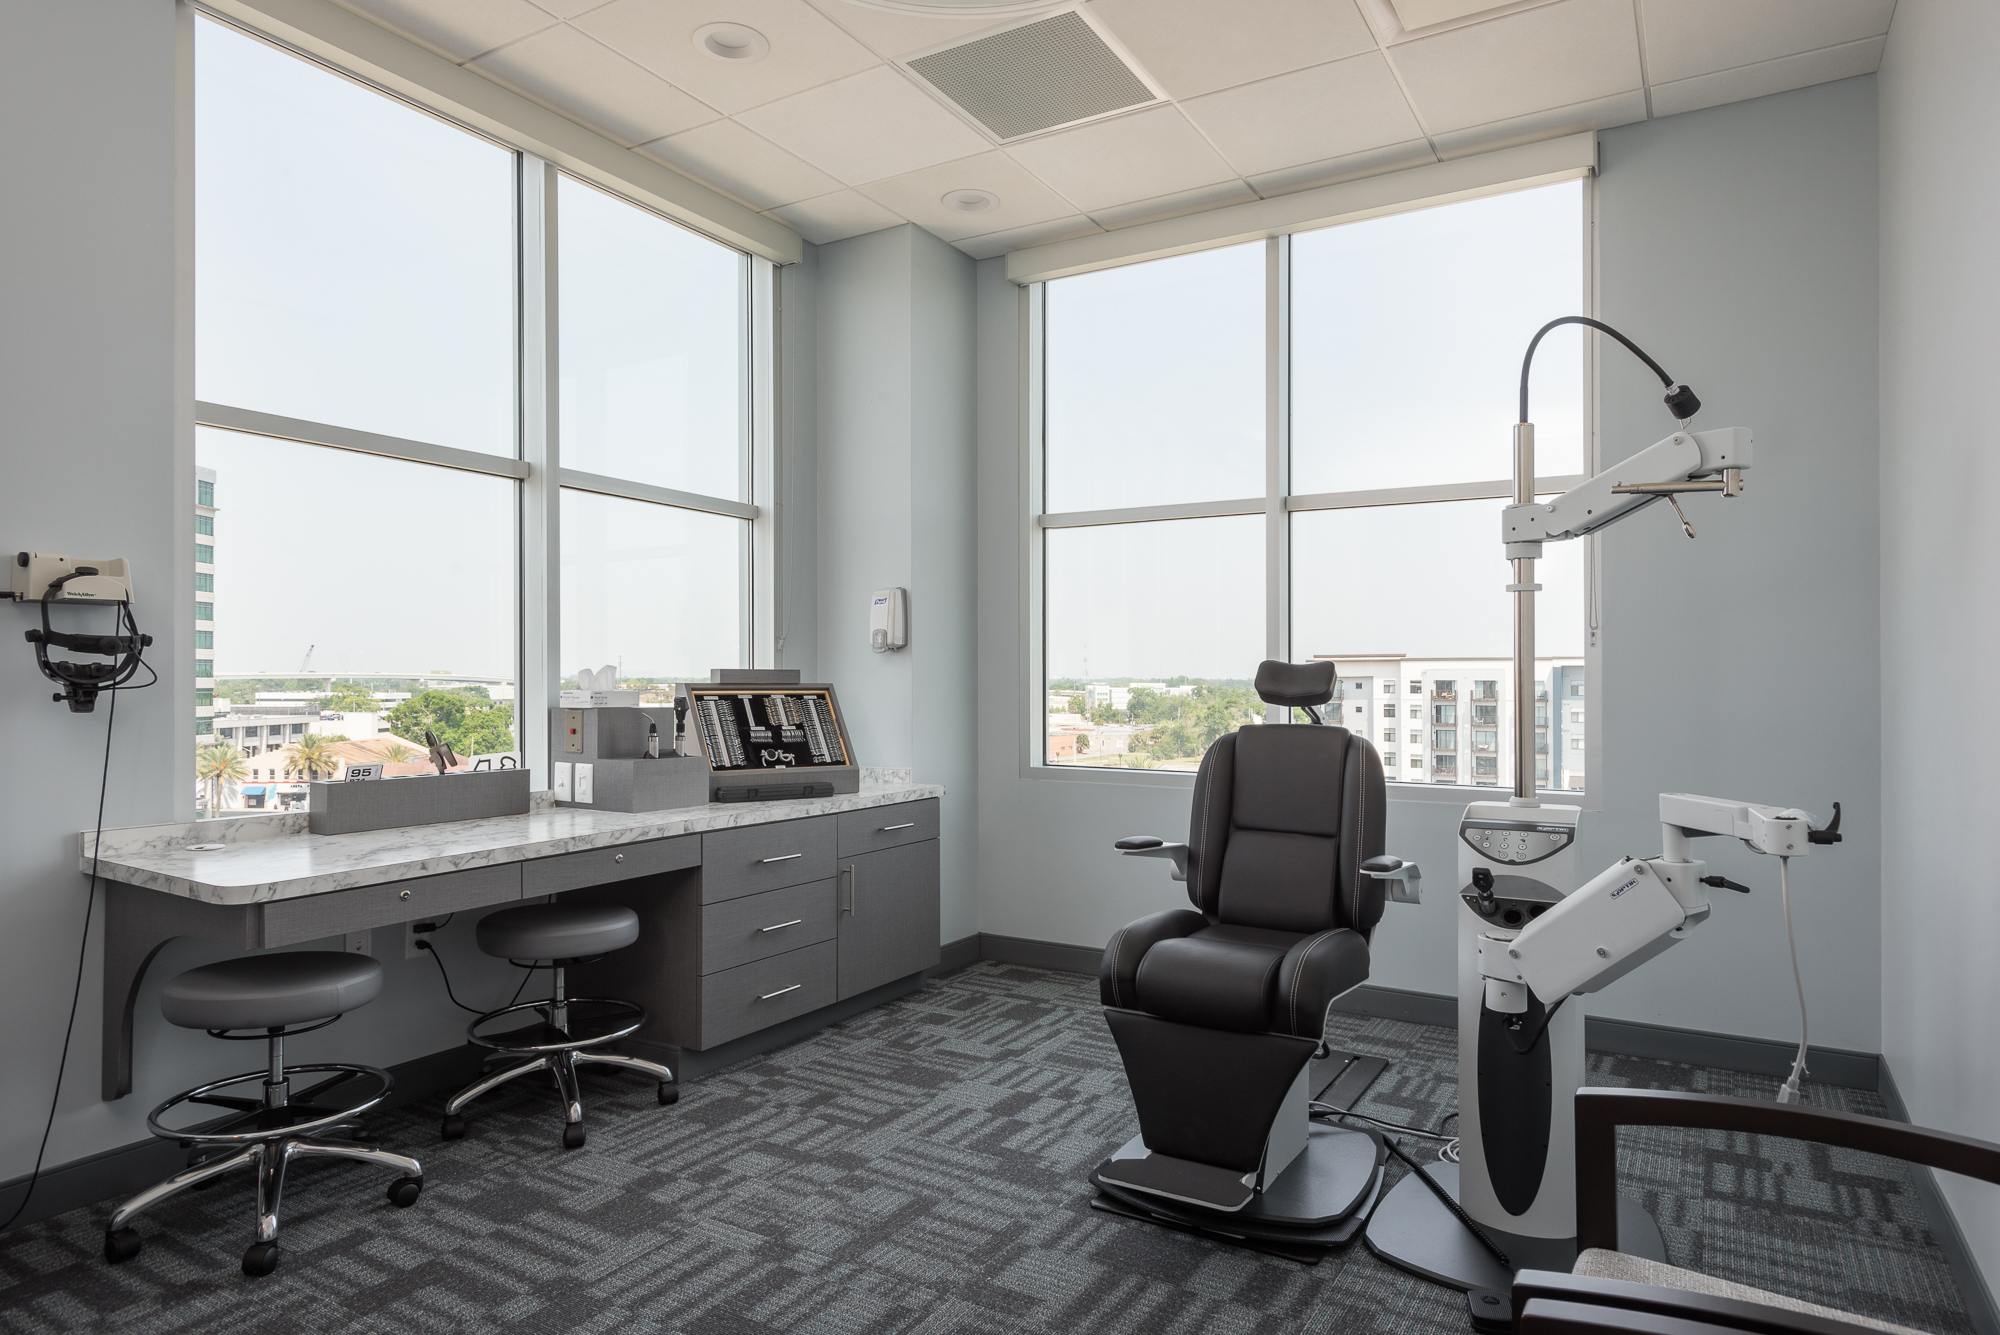 Micamy Design Studio_Interior Design_Pediatric Eye Consultants_North Florida_Riverside_Ophthalmology_Strabismus_Commercial_Office_Medical_Eye Care_Renovation_Patcraft_Patient_Exam Rom.jpg